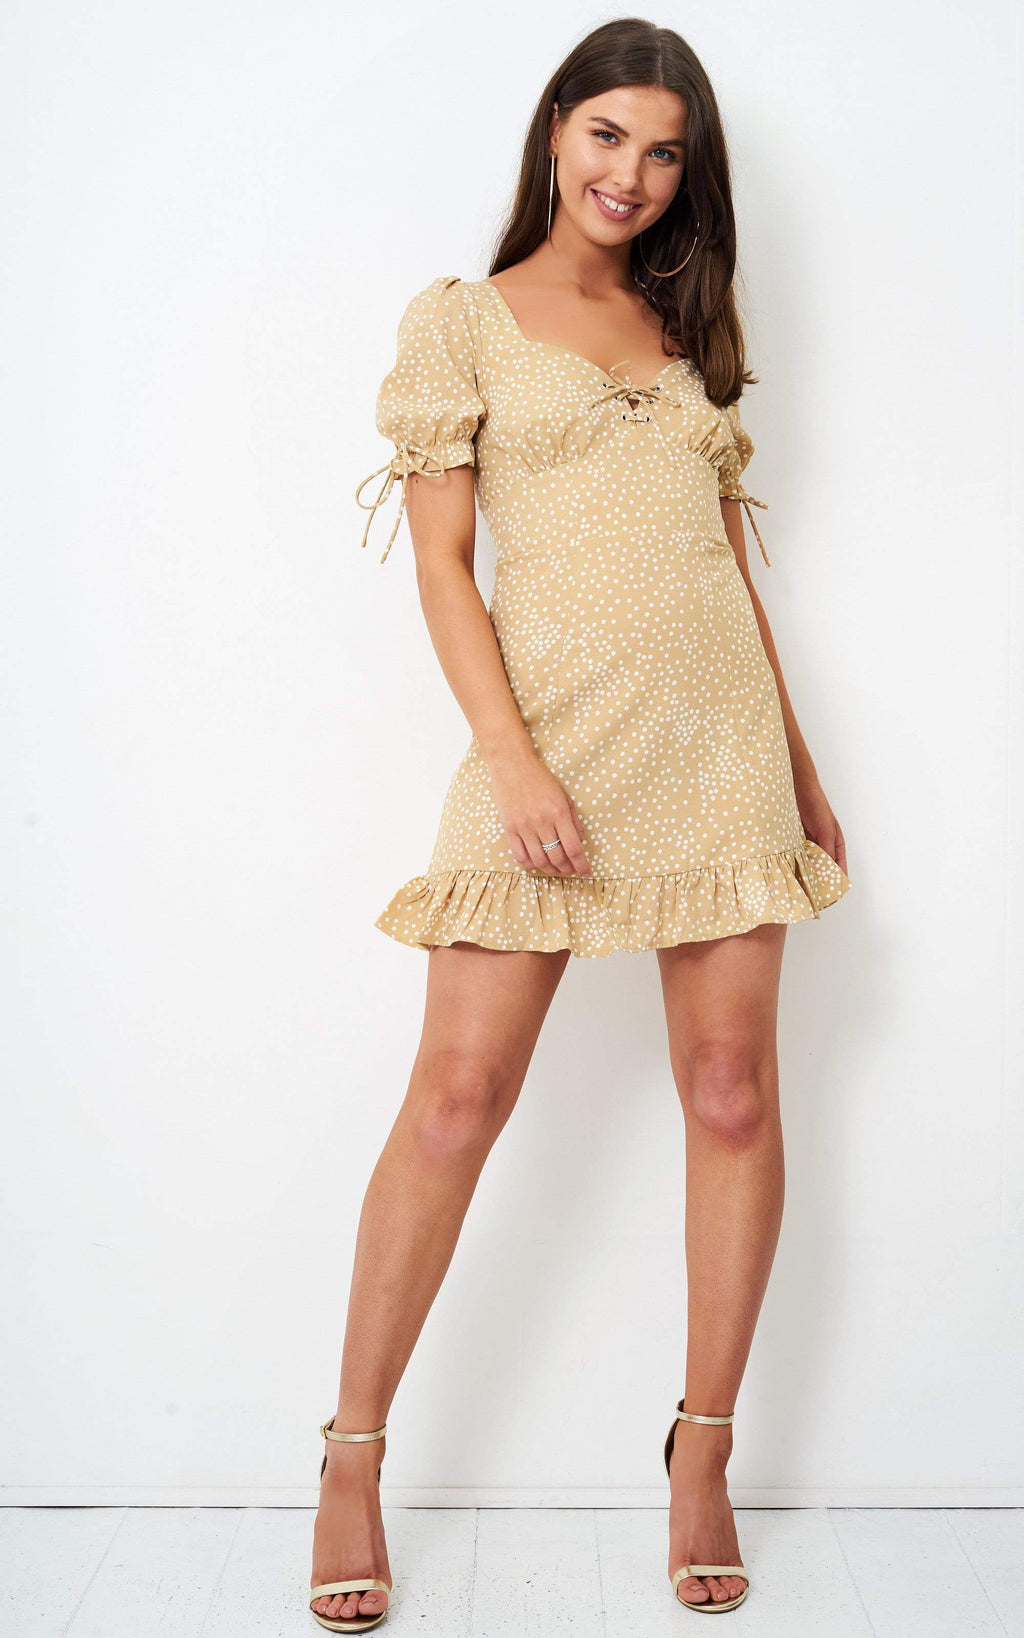 Winyla Tan Polka Dot Mini Dress - love frontrow